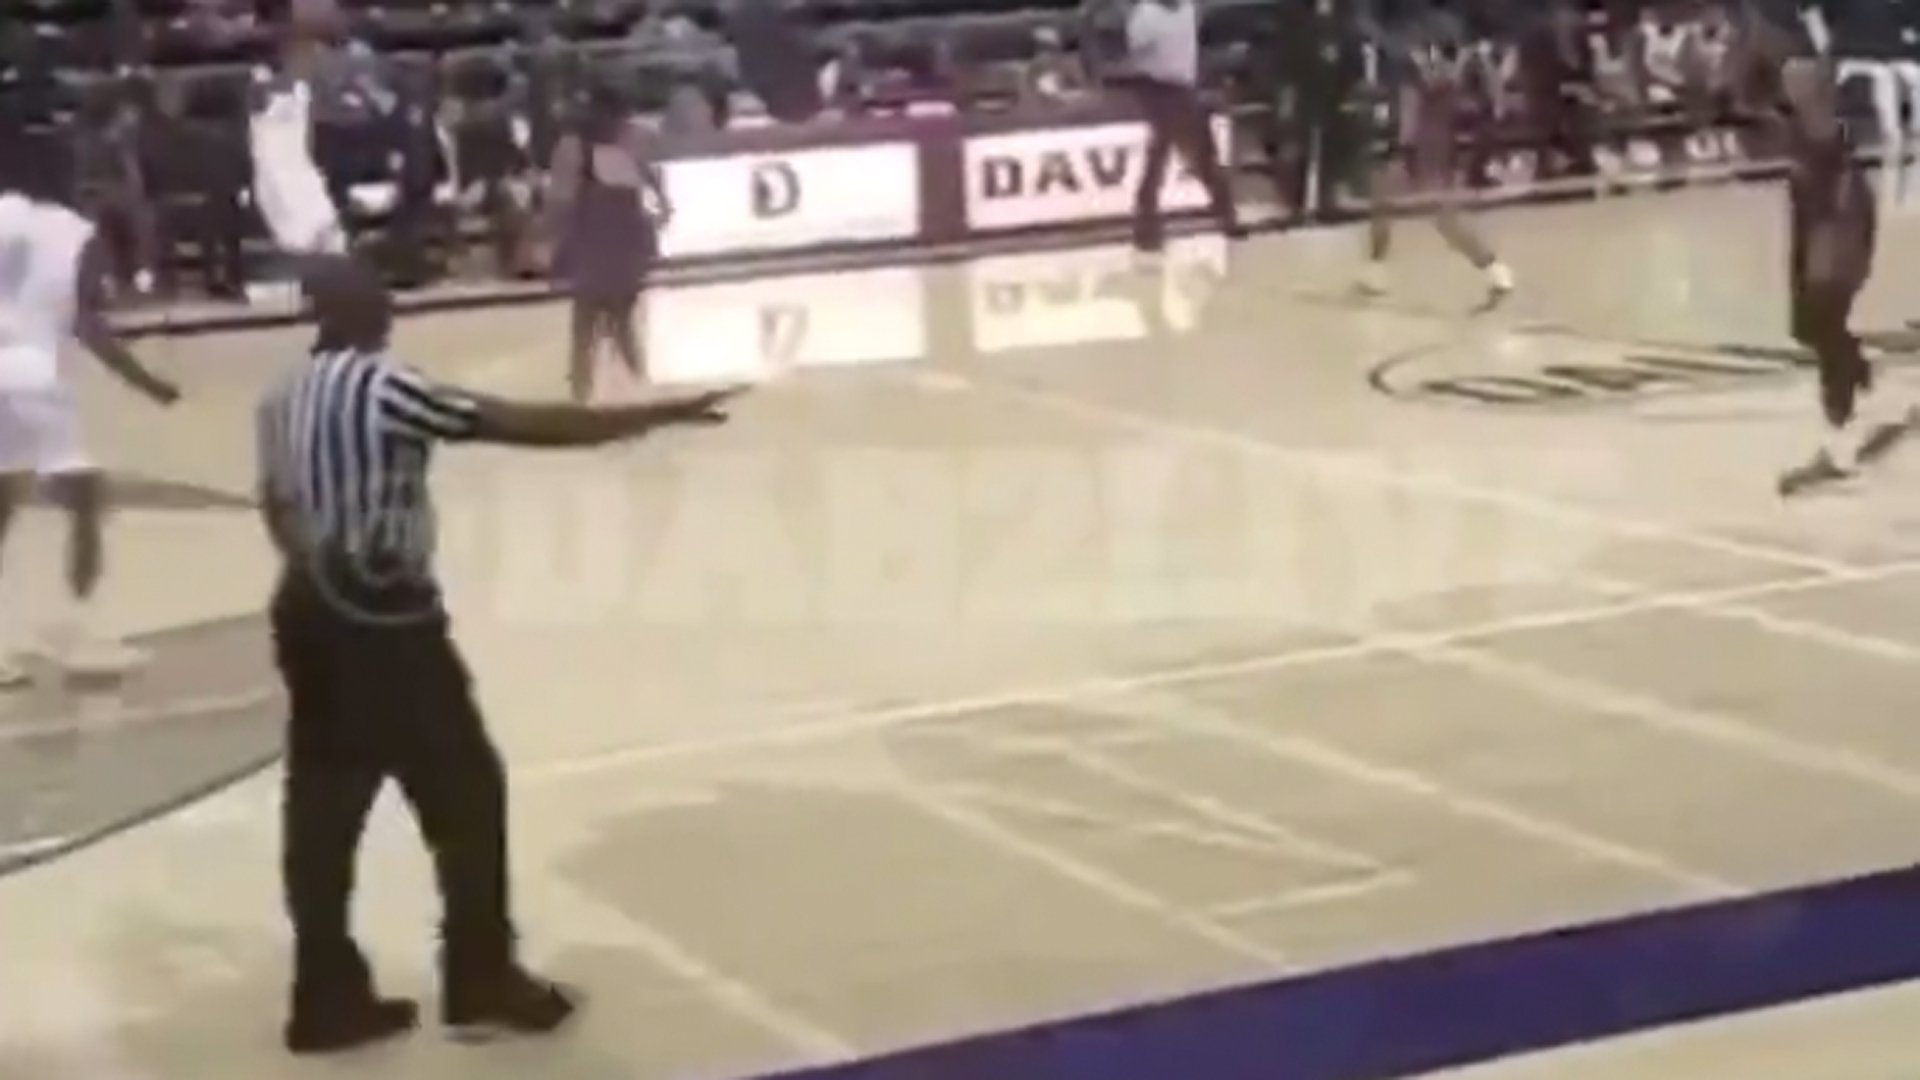 Gunfire broke out during a high school basketball game in Dallas on Jan. 11, 2010. (Credit: @DAB2LIVE via Twitter)